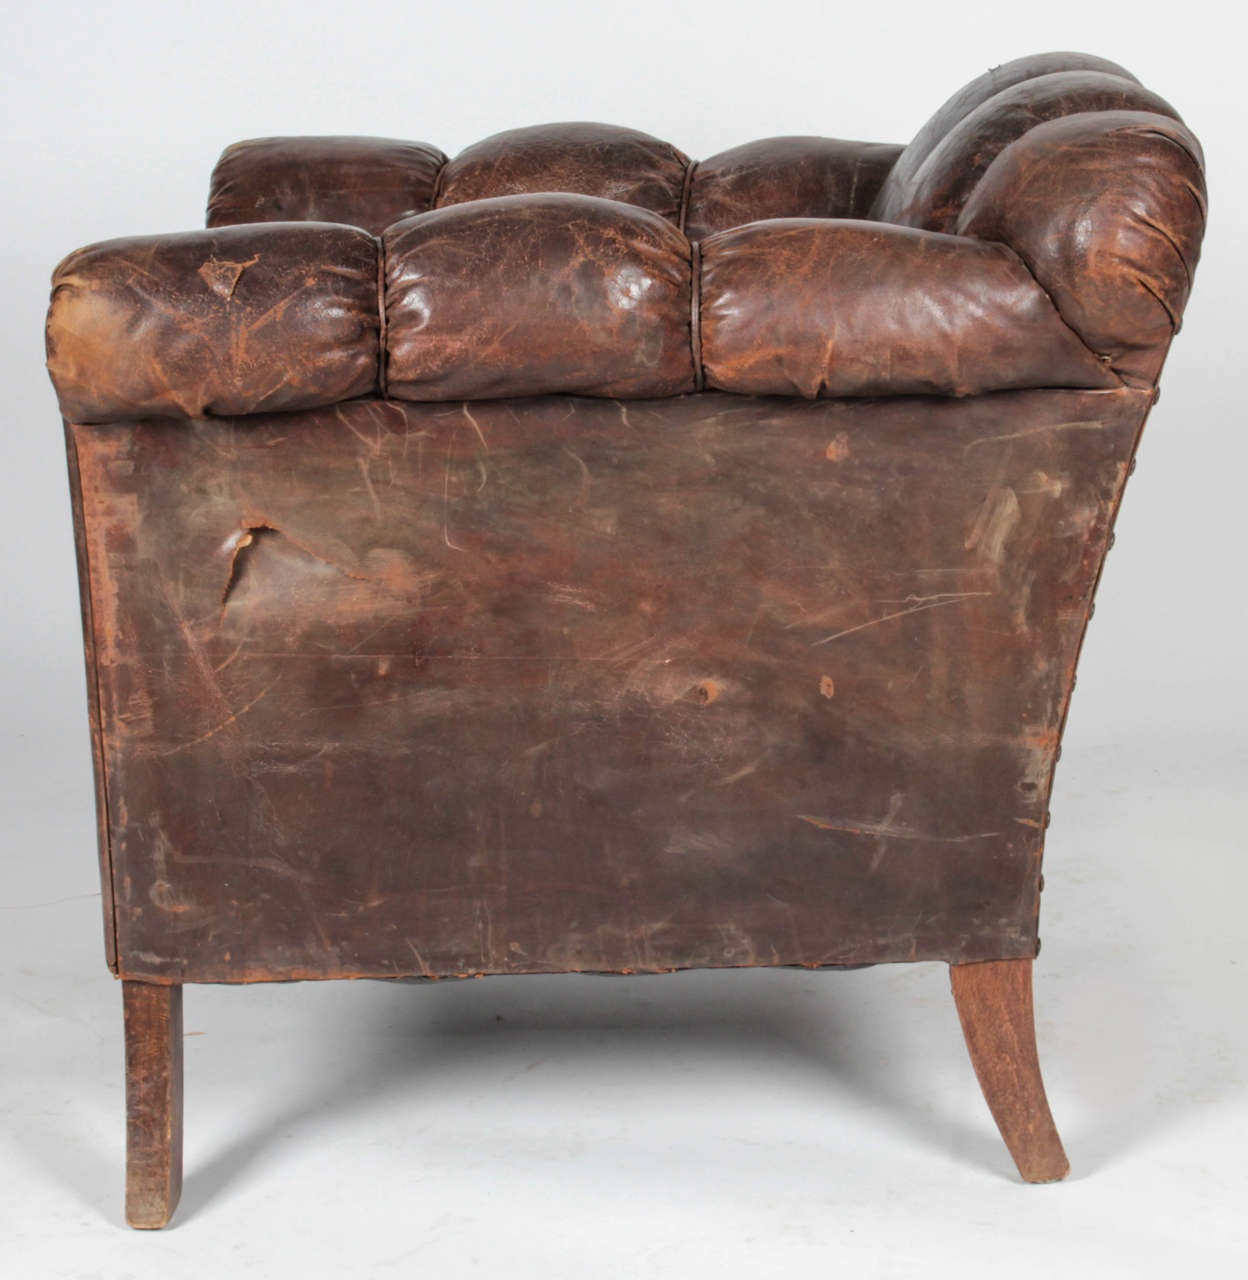 leather chairs for sale ebay linen chair covers 20th century distressed vertical tufted club